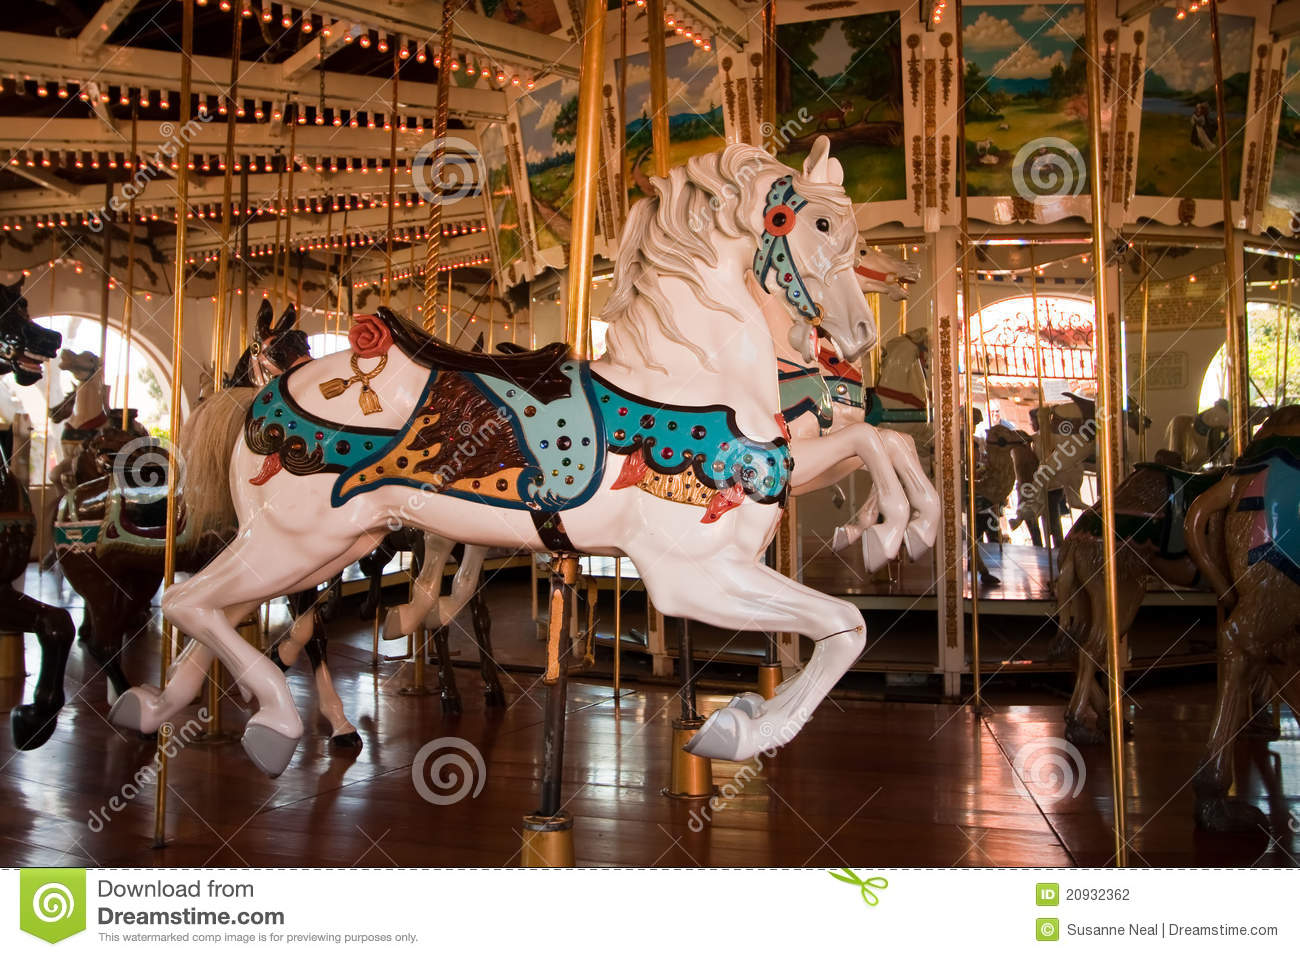 Detail of a carousel horse